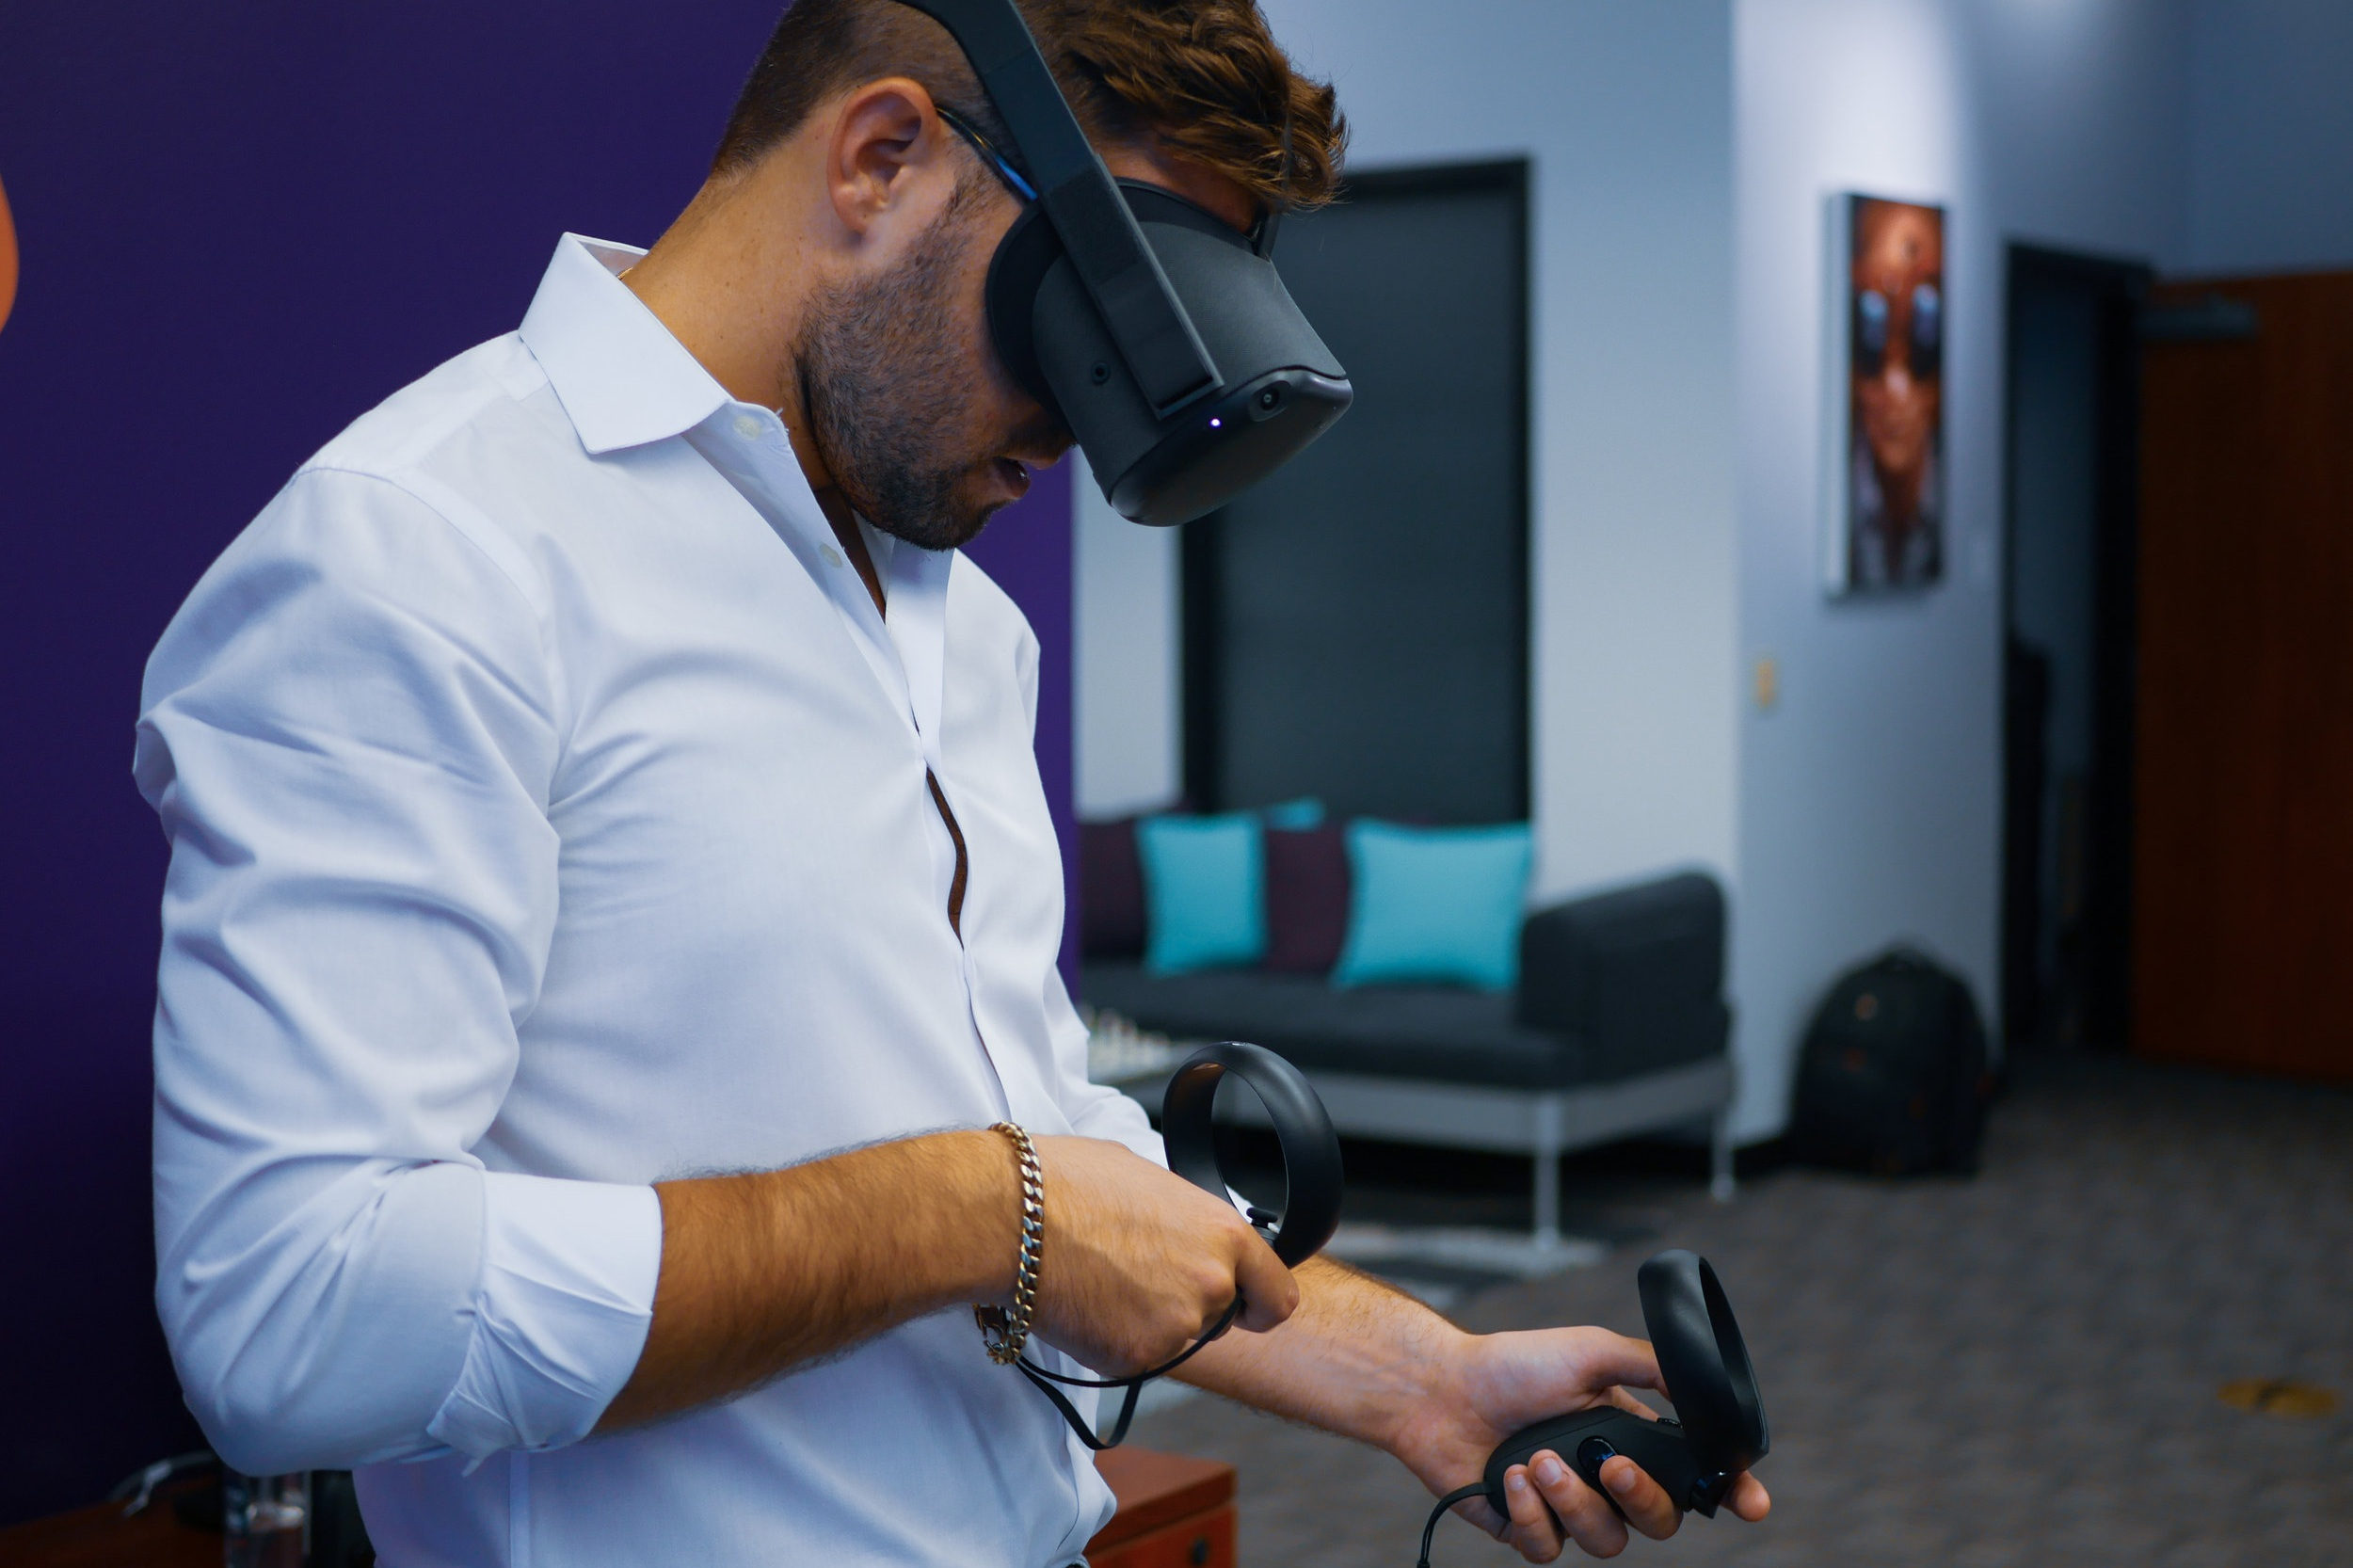 Integrated User Testing - Our Experience Design team conducts regular testing with first-time VR/AR users throughout the development cycle to help simulate each client application's anticipated use environment. This process surfaces non-obvious design and usability issues early, resulting in more intuitive, user-friendly apps at full launch.